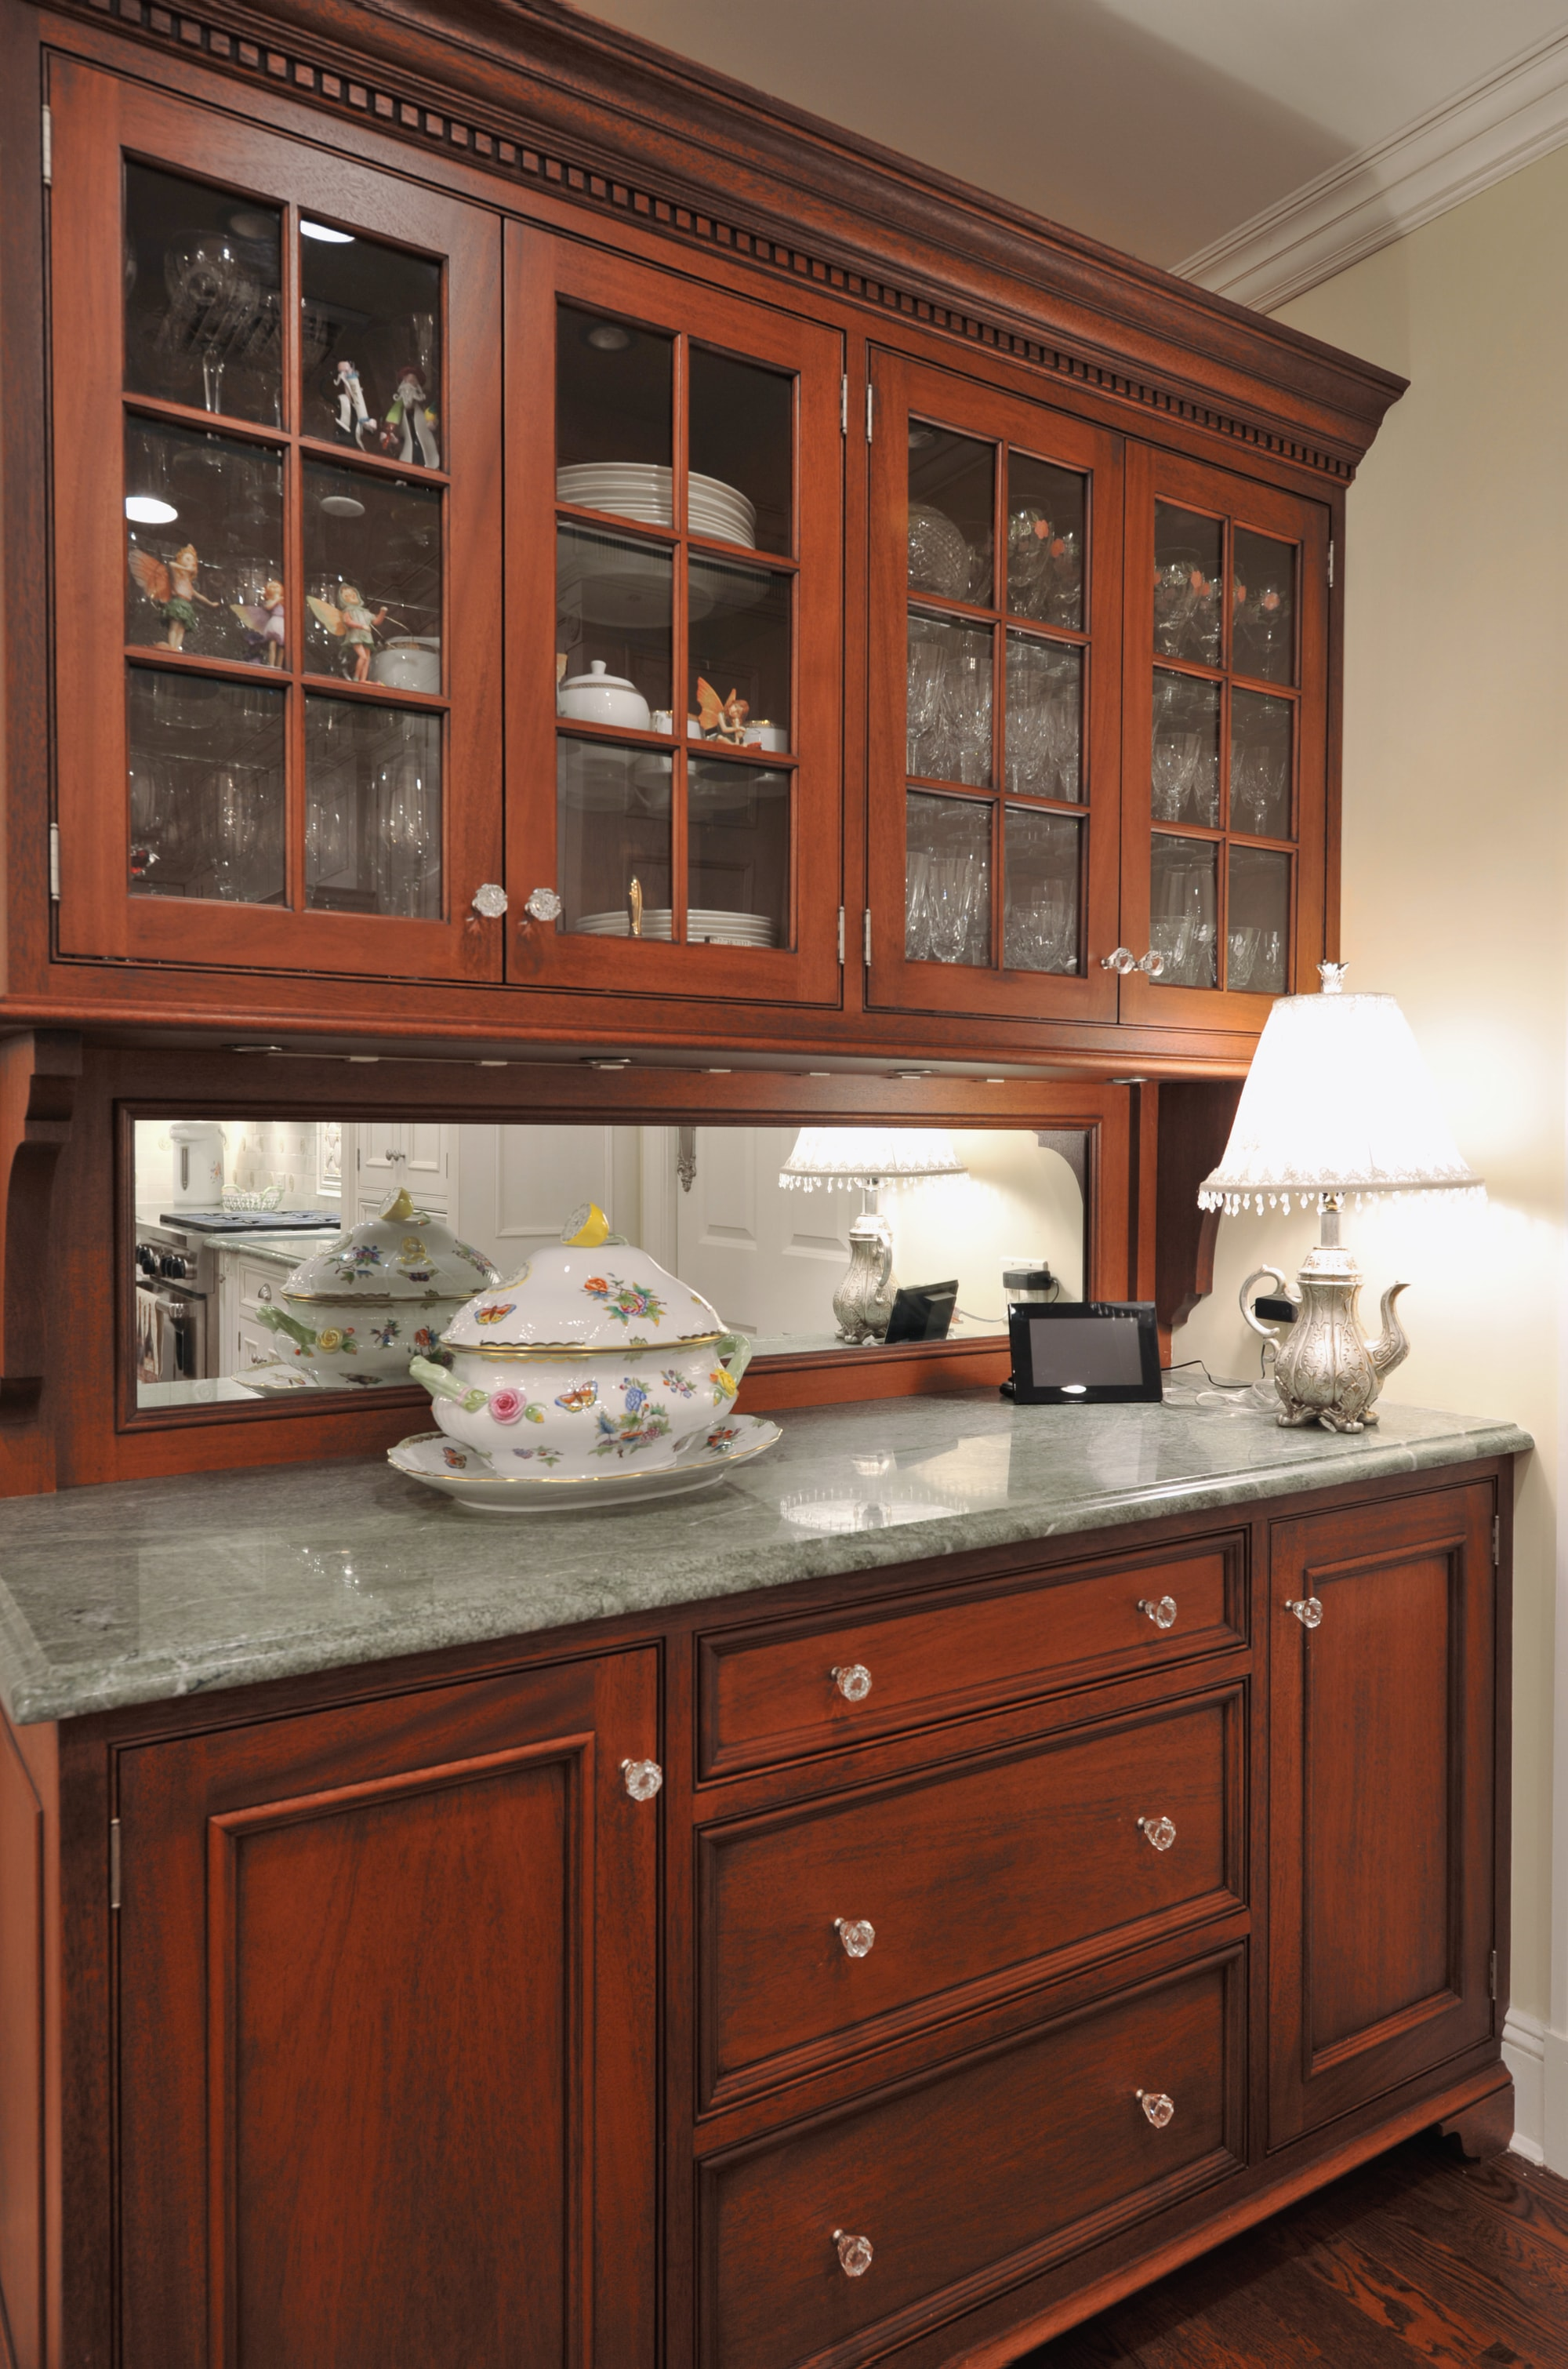 Traditional style kitchen with spacious glass cabinets